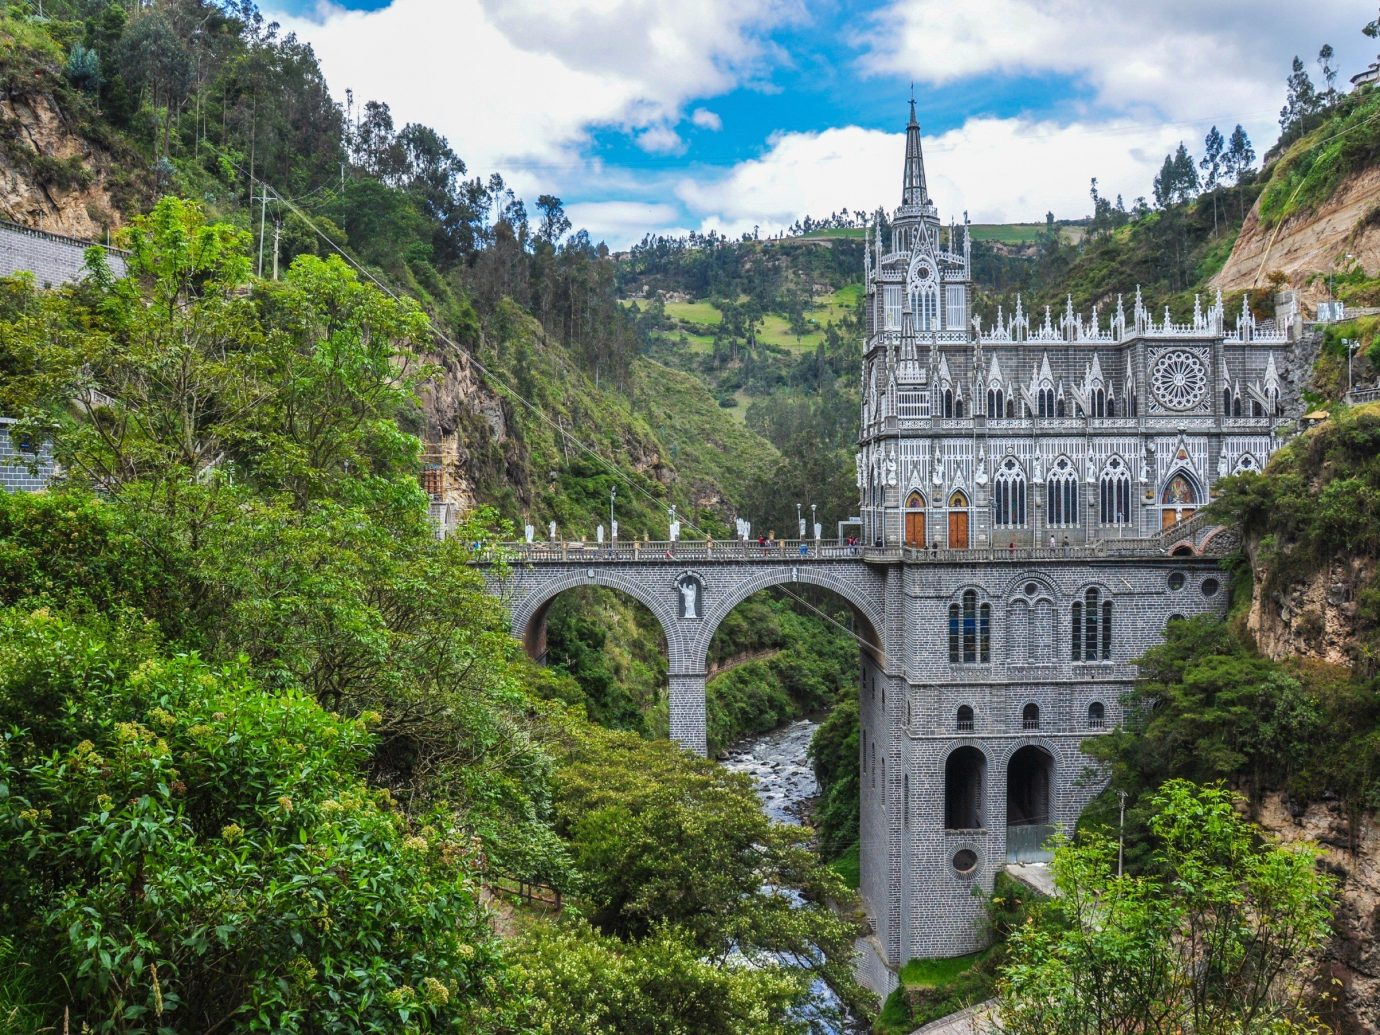 Offbeat tree outdoor bridge sky building River historic site landmark Town tourism vacation traveling monastery tours château viaduct unesco world heritage site old stone bushes Forest surrounded